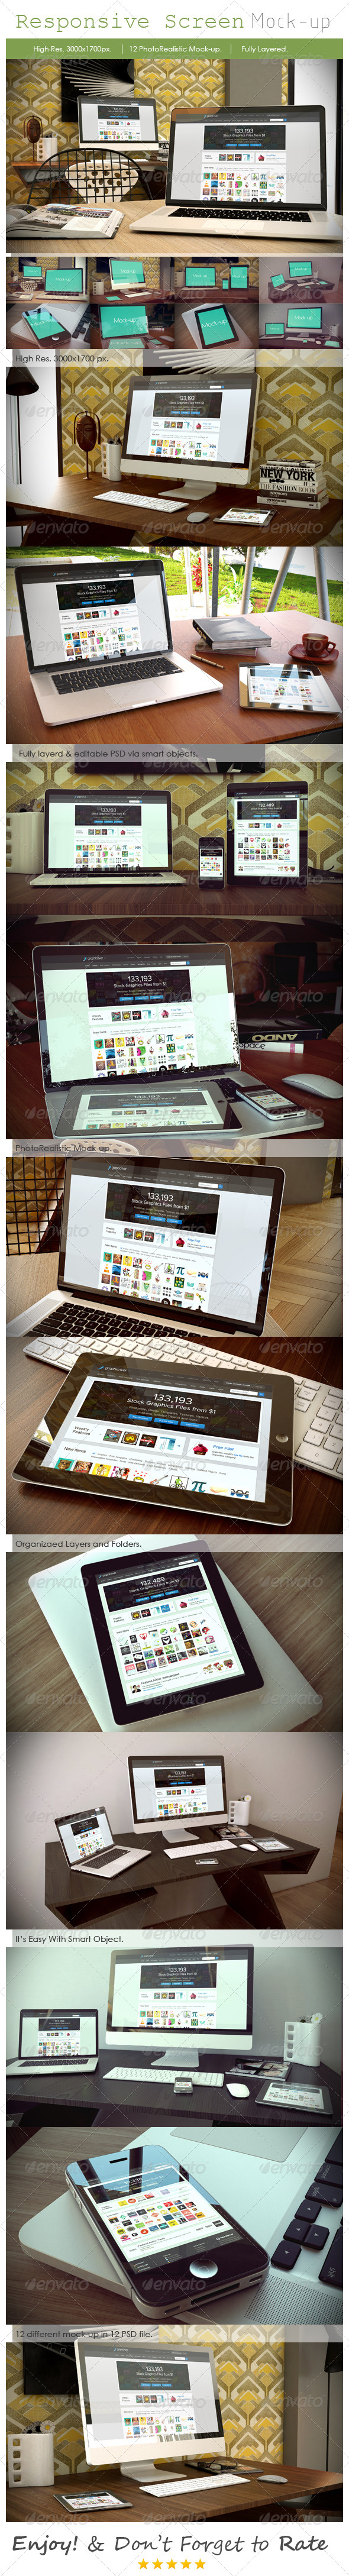 Responsive Device Mockup - Multiple Displays